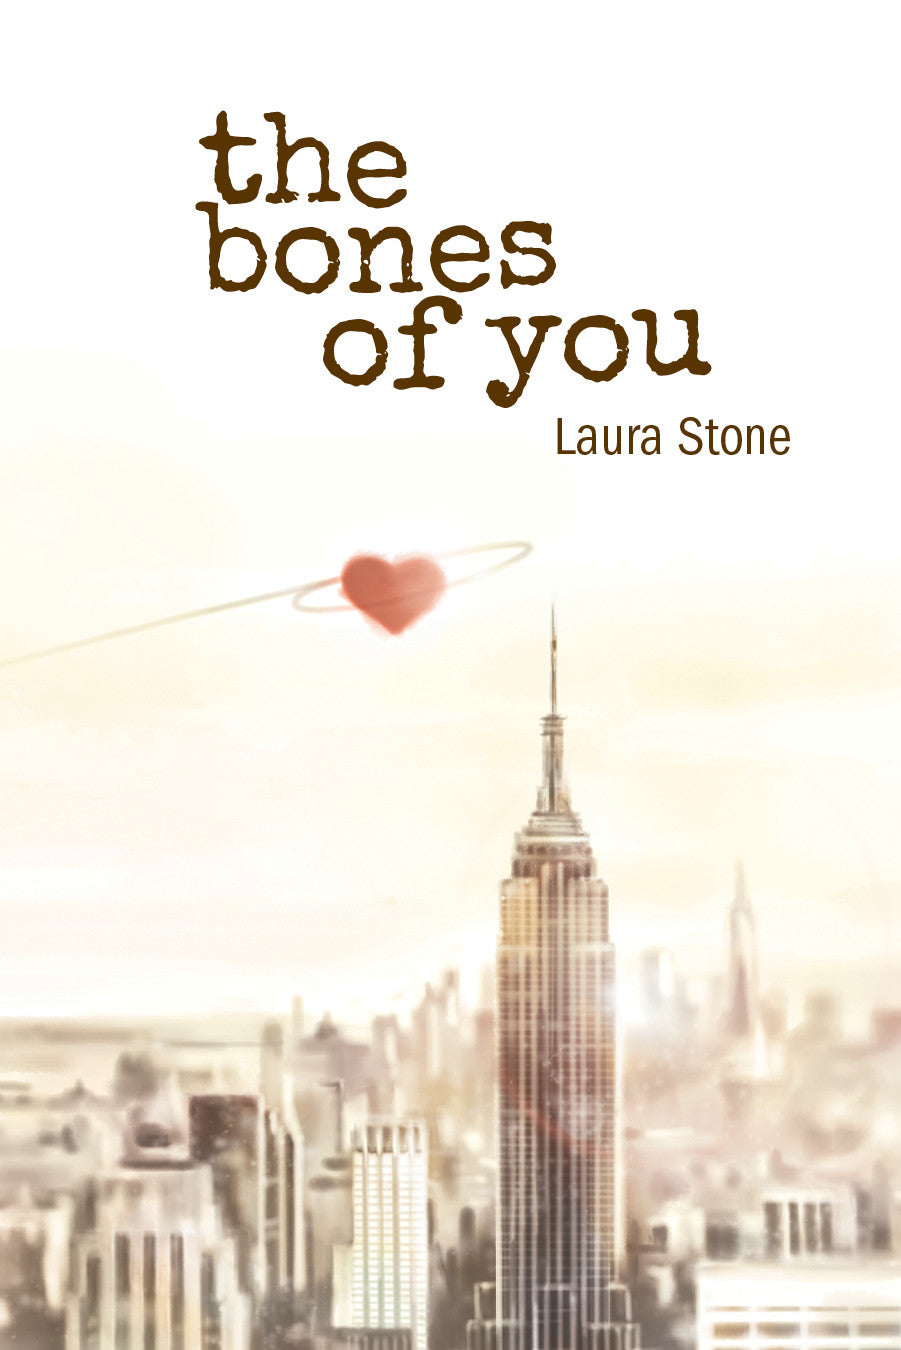 The Bones of You by Laura Stone